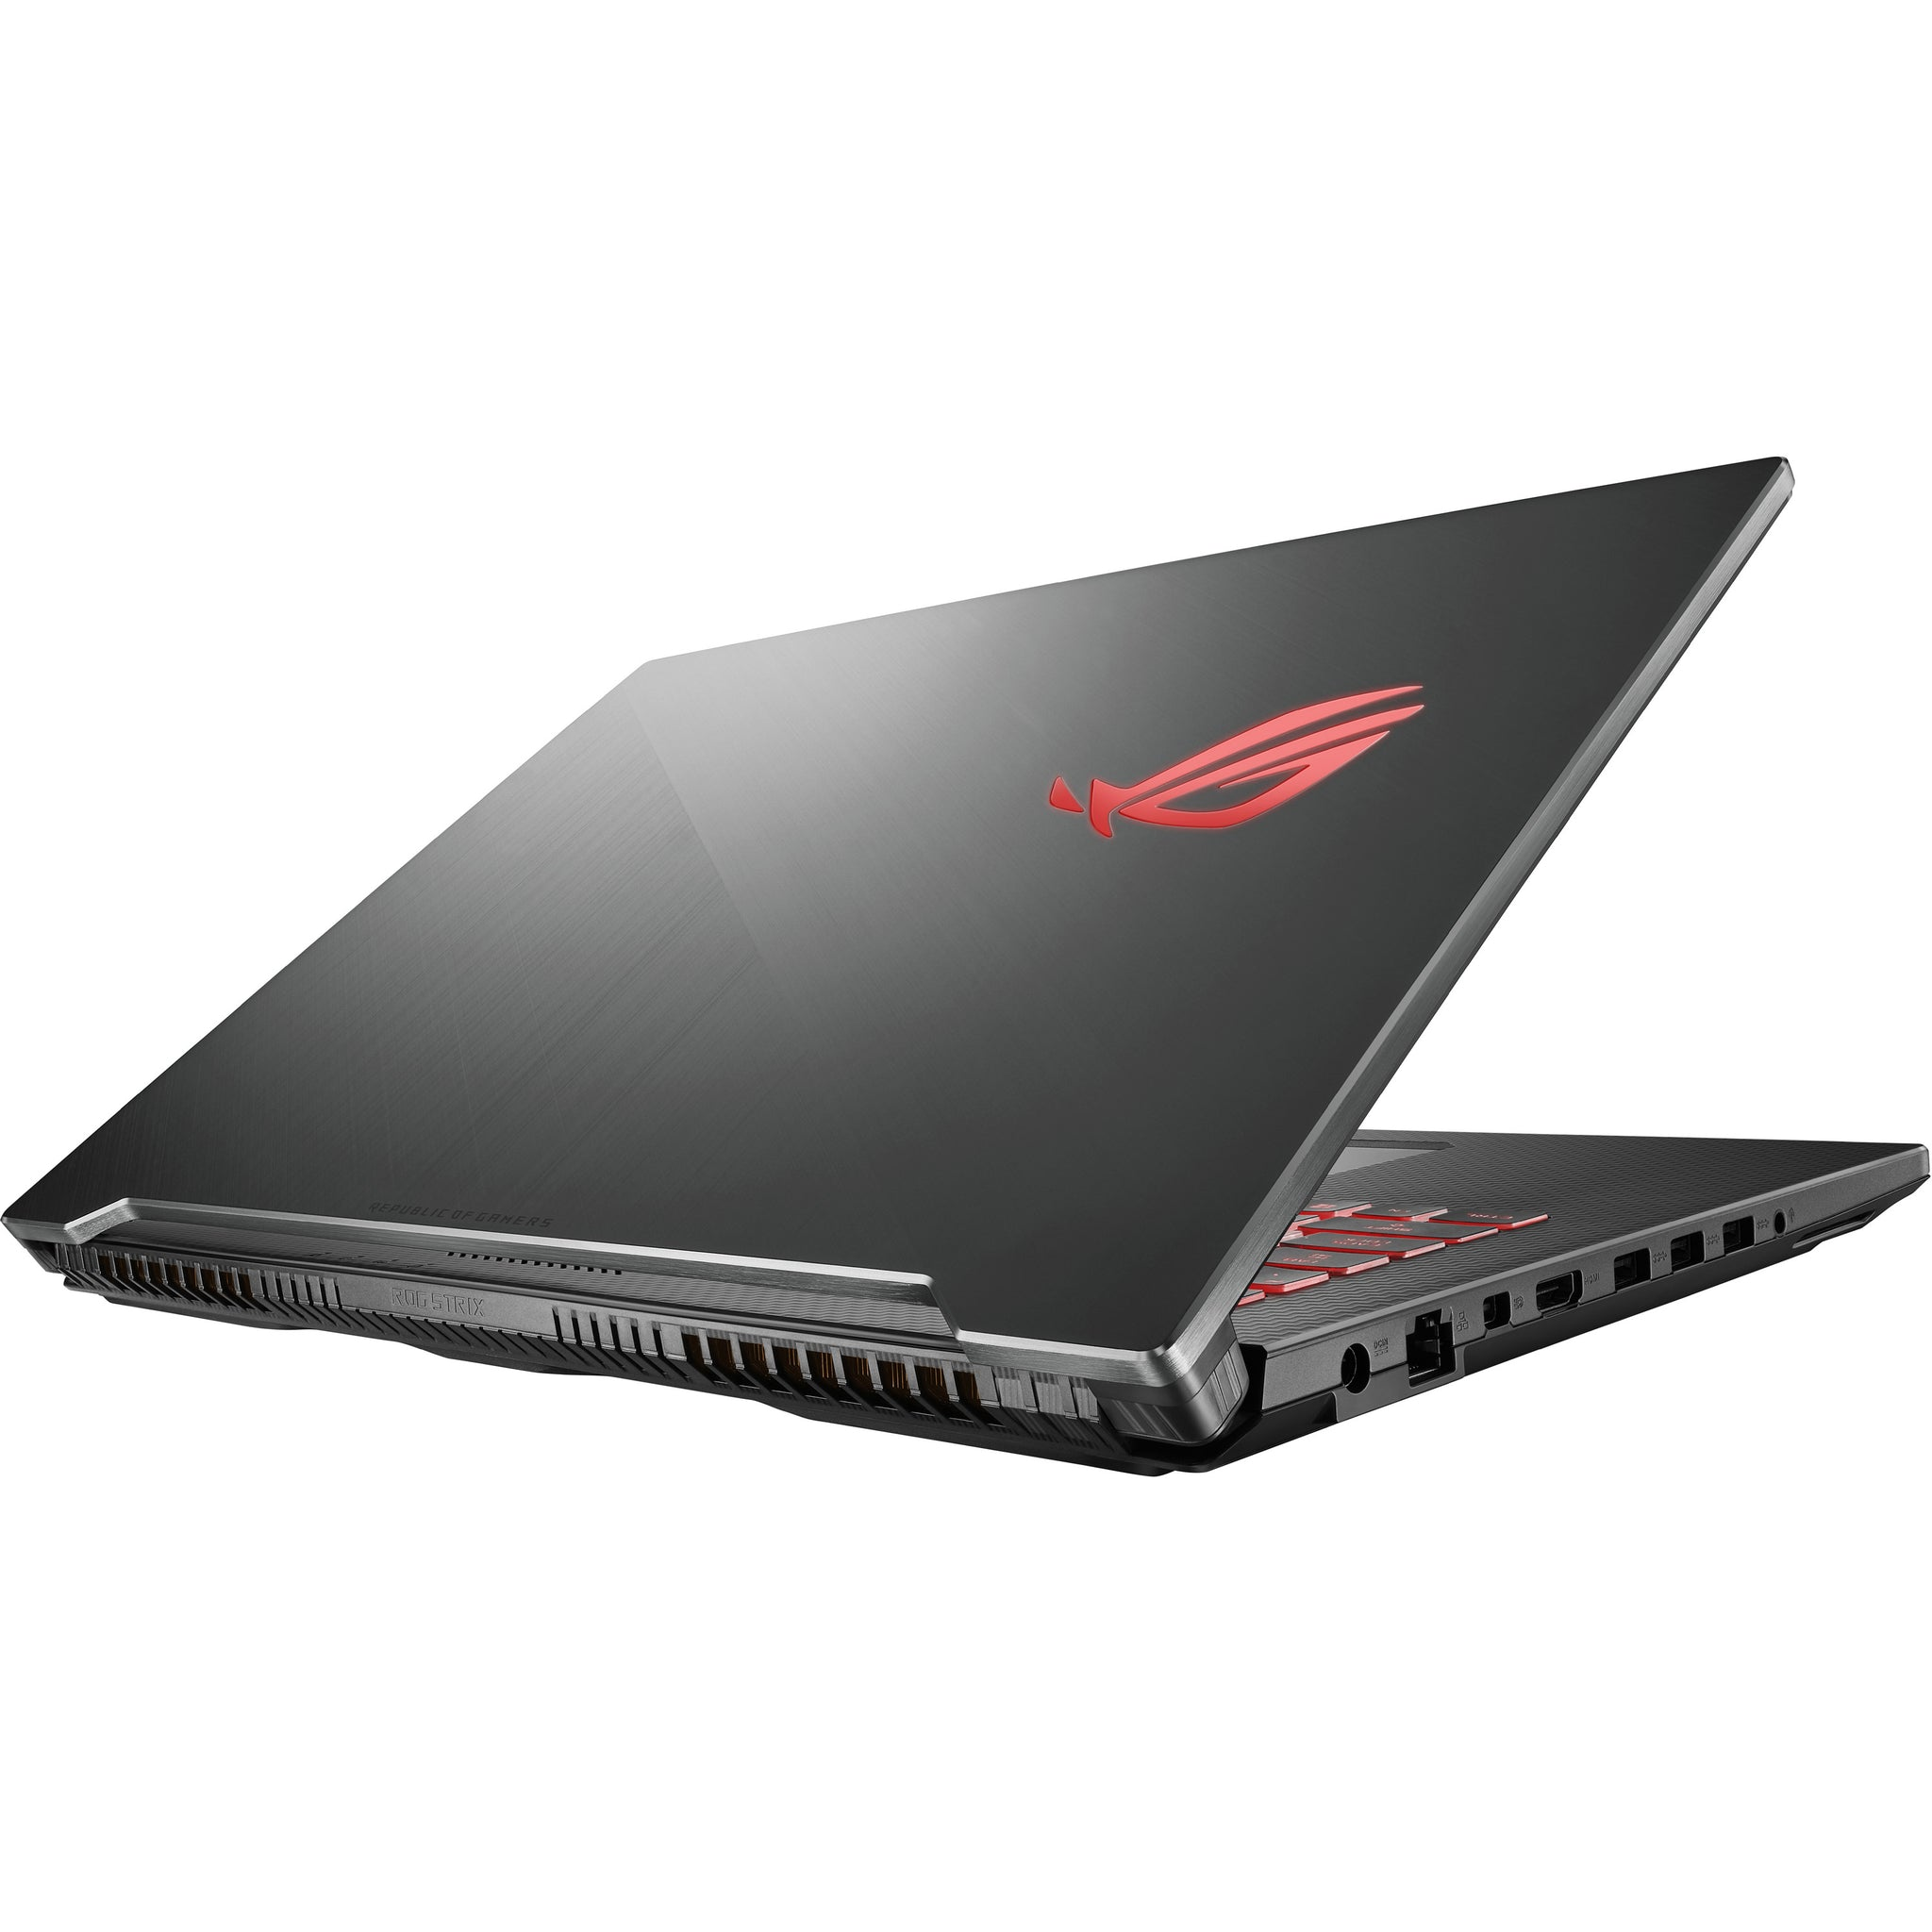 "Asus Notebook Gaming Machine 17.3"" i7-8750H 16GB 1TB Win10"